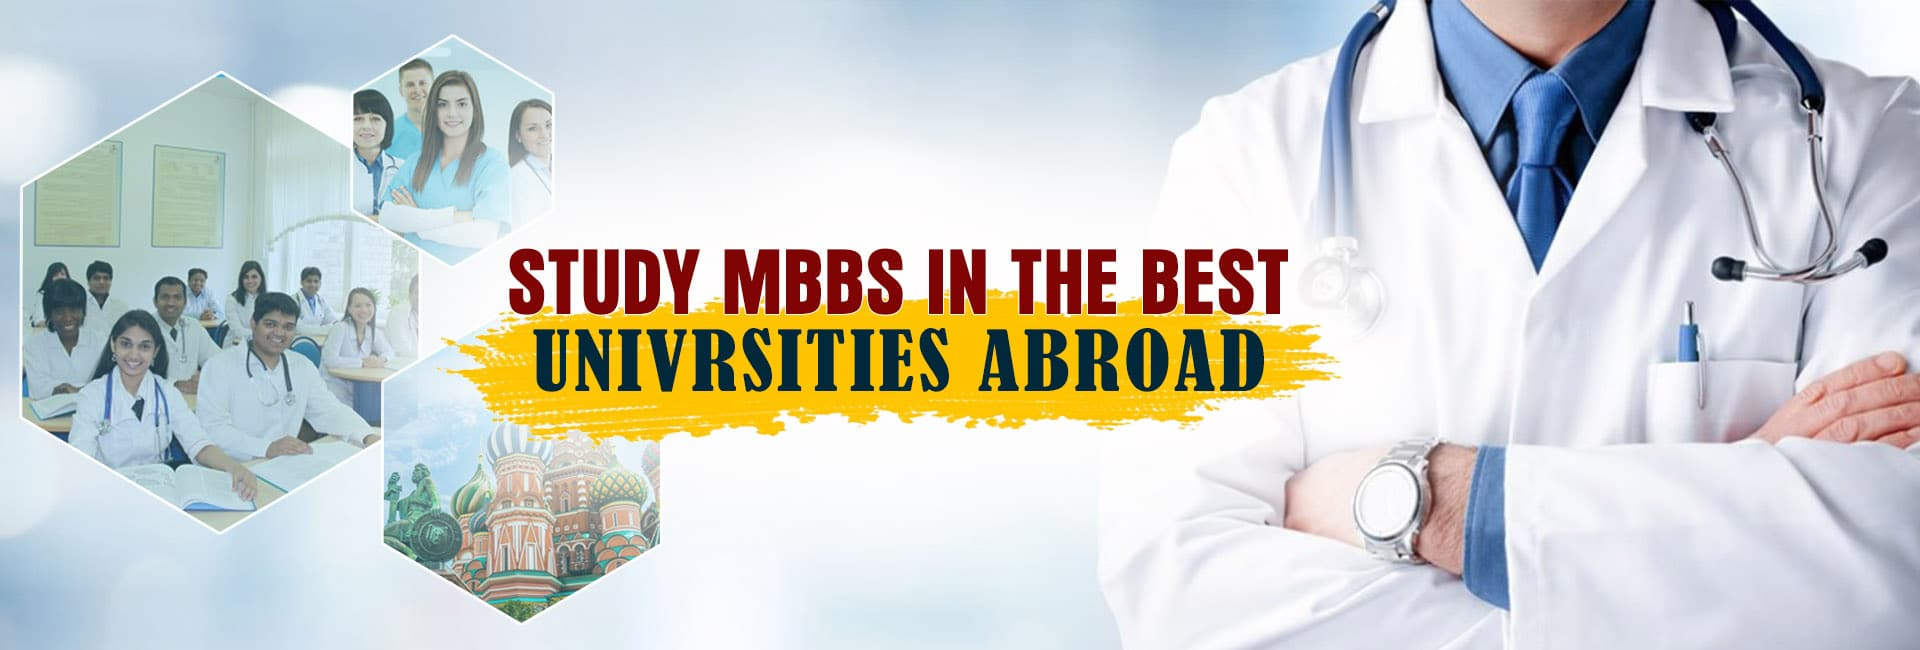 Banner, best mbbs university in Russia for indian students